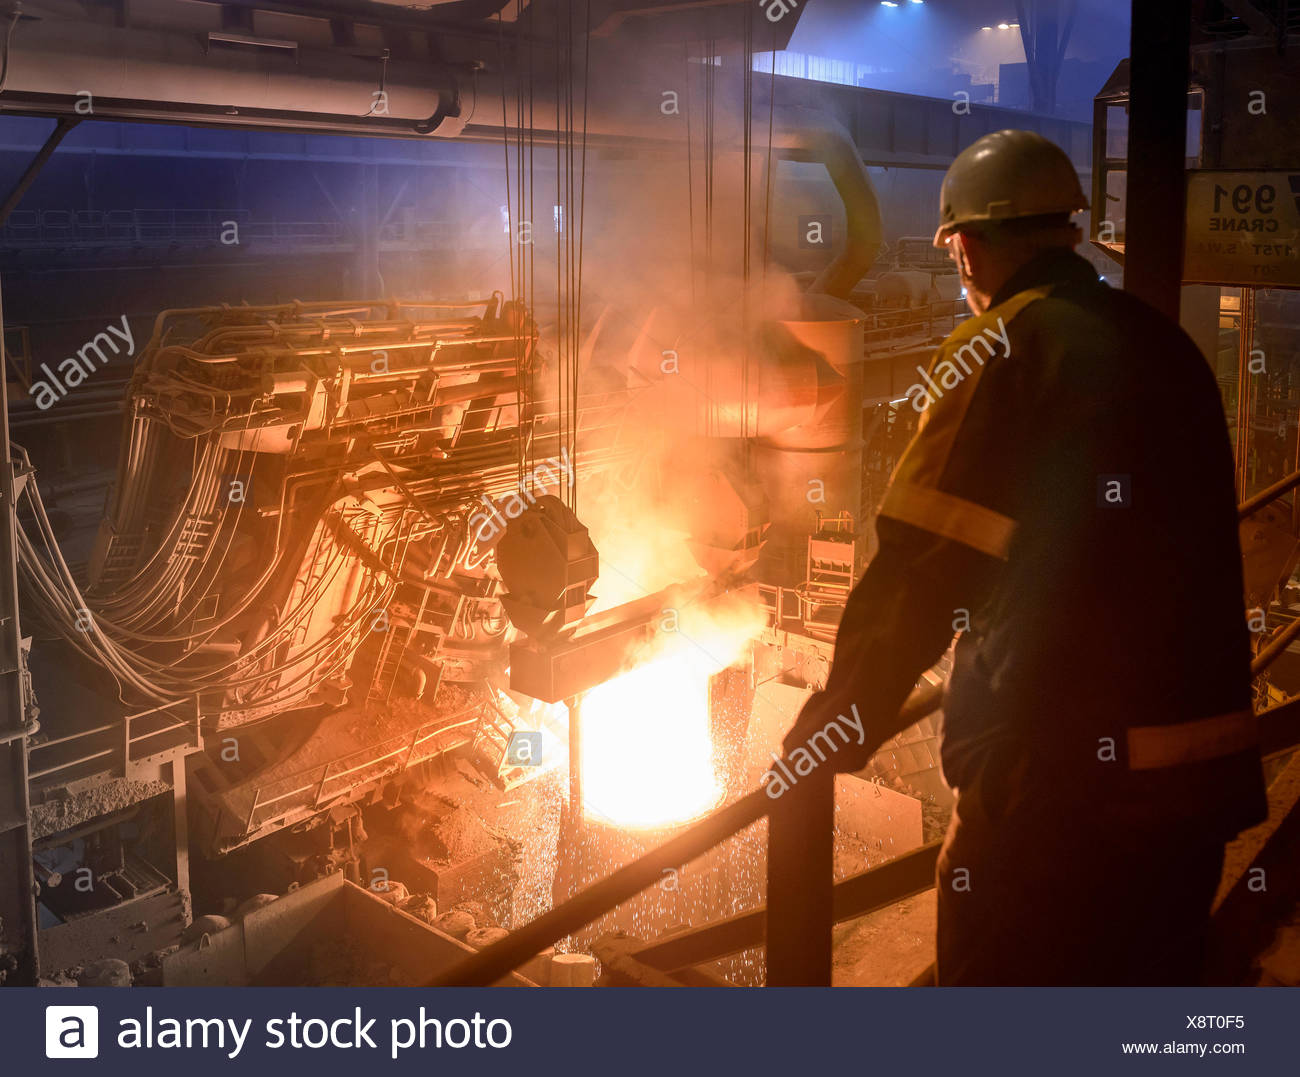 Steel worker inspecting pouring molten steel - Stock Image